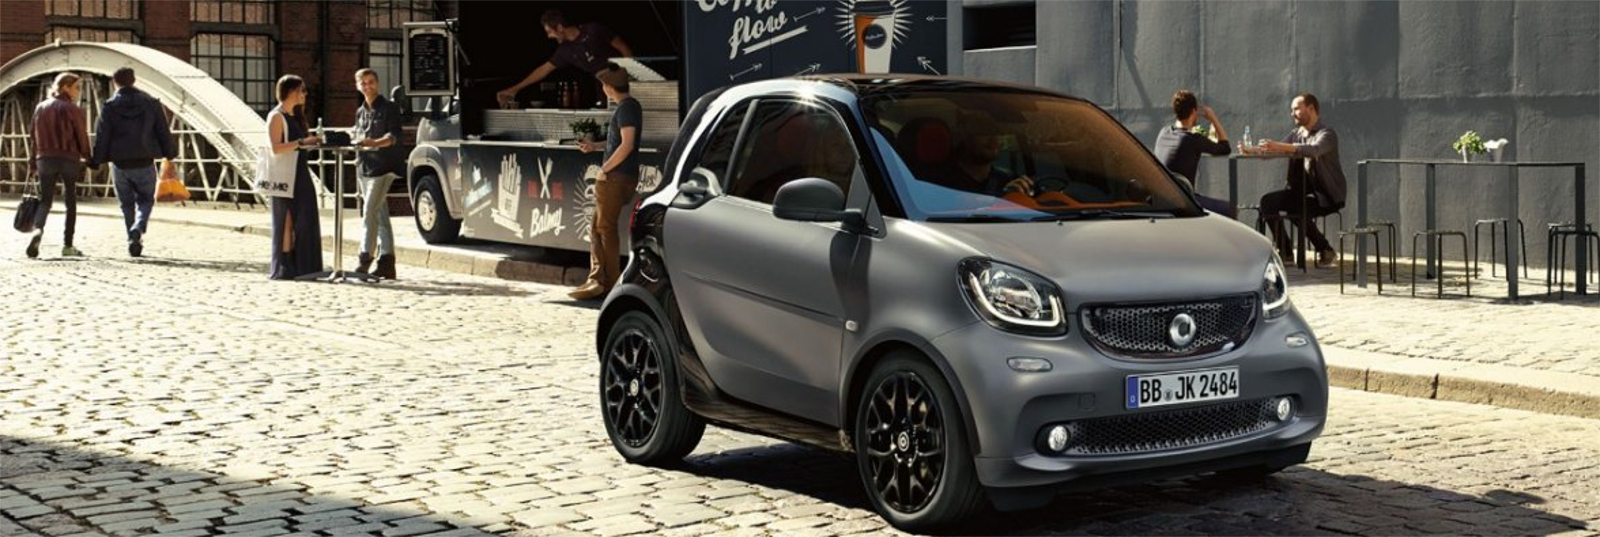 Lateral smart fortwo